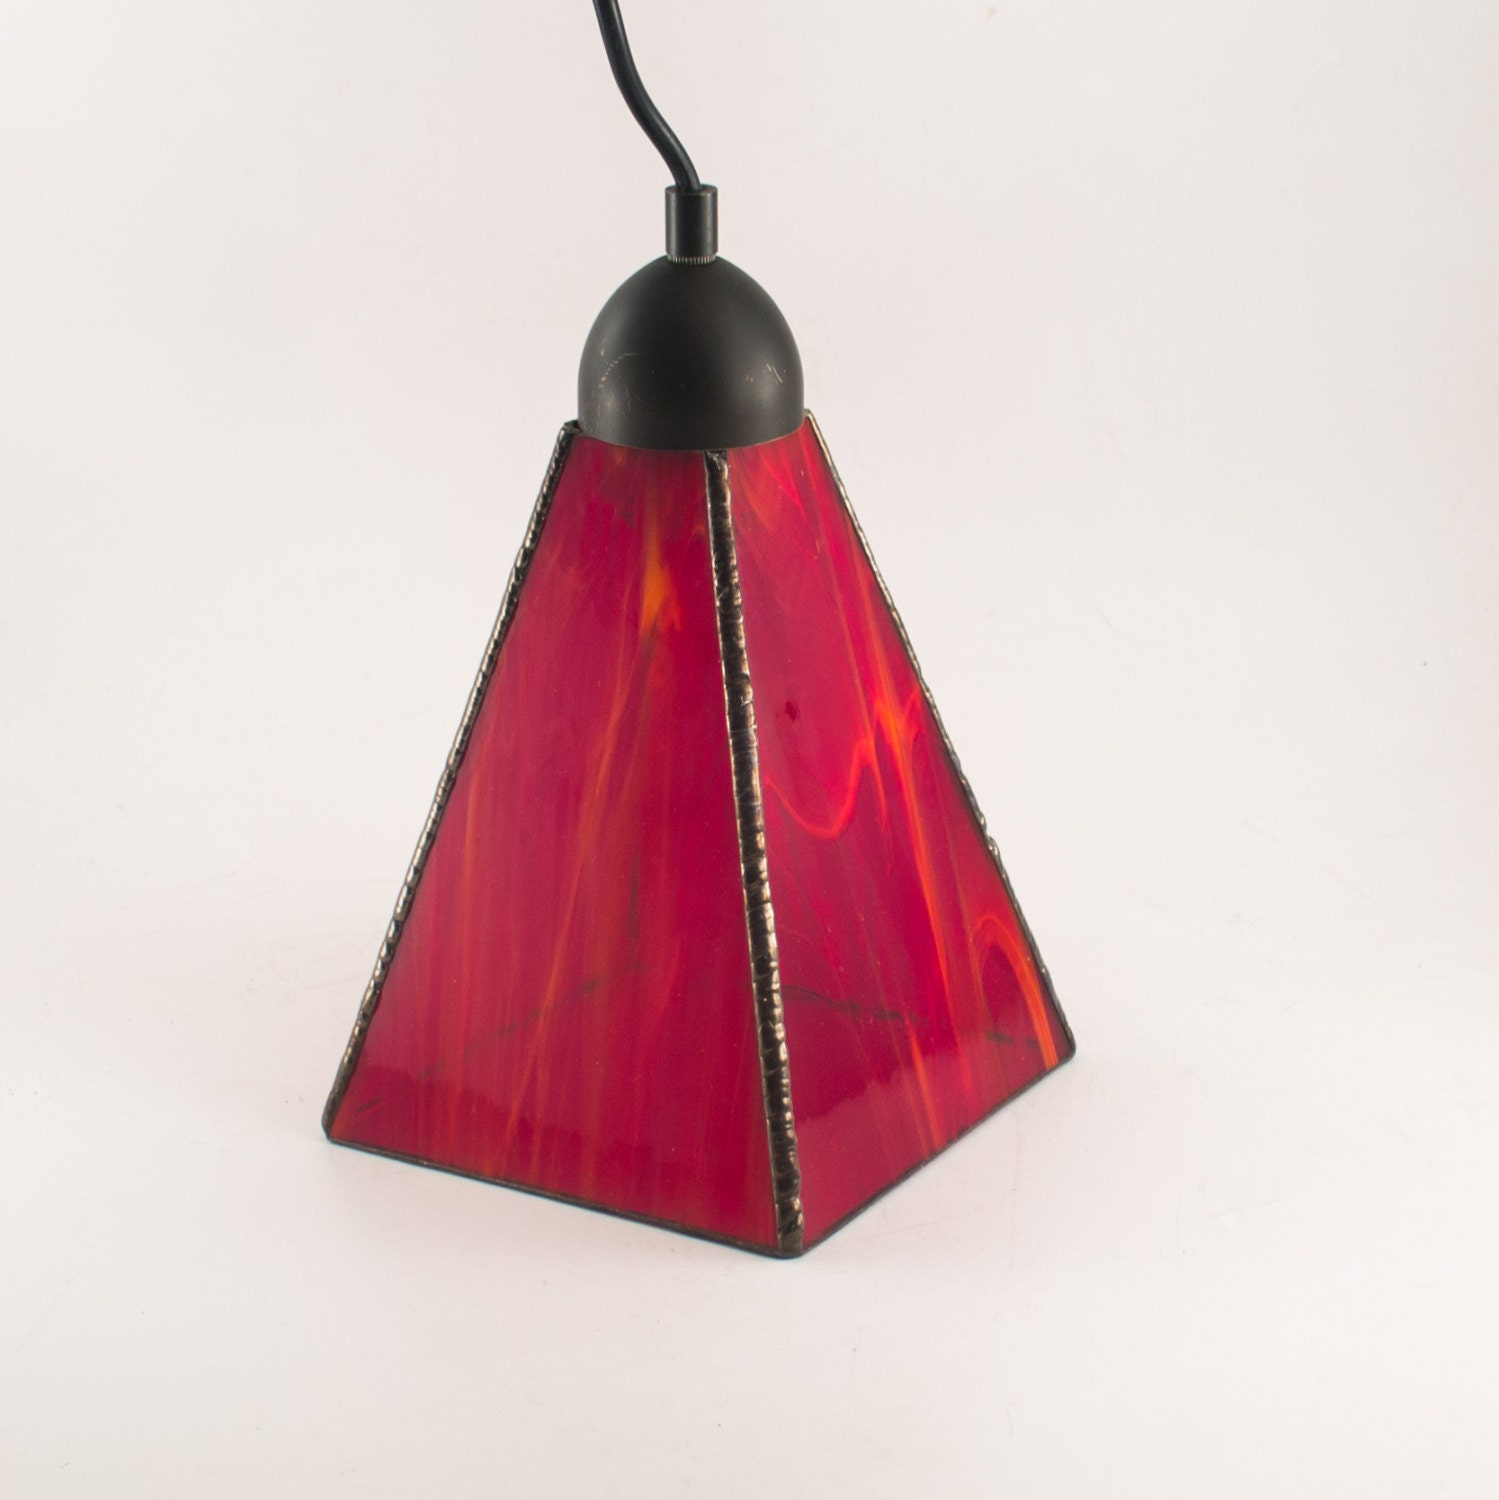 Kitchen Hanging Lamp Red Pendant Light Modern Interior